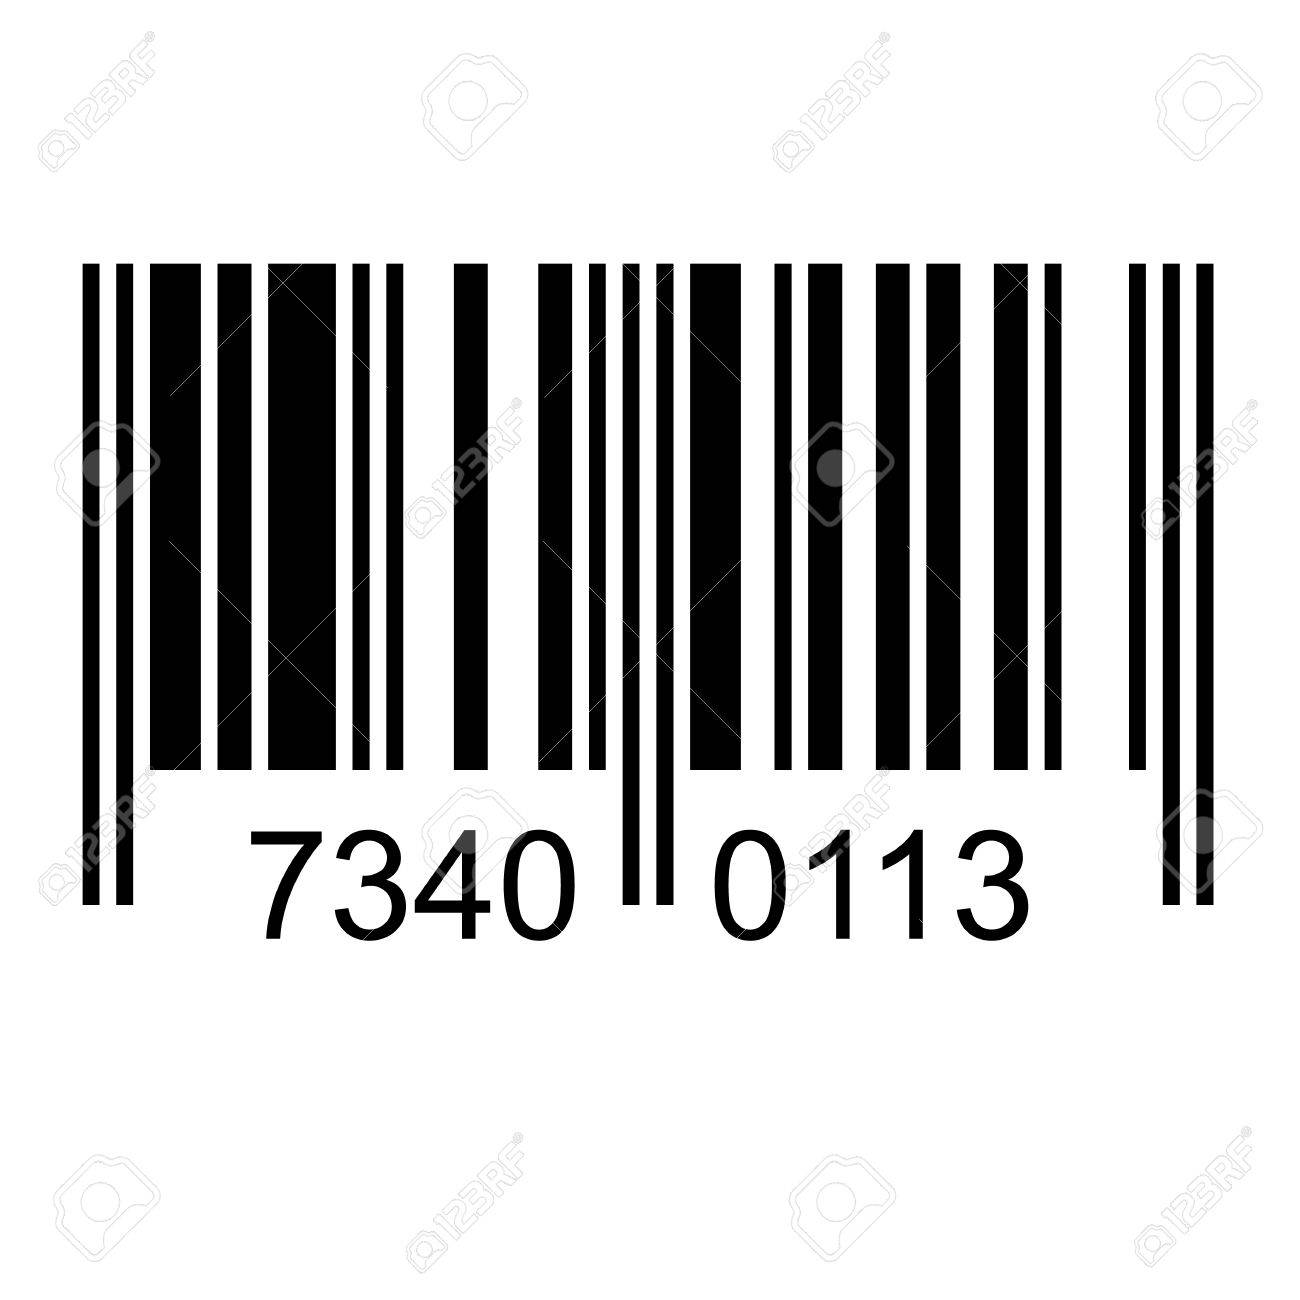 Numbers Fake Illustration Image Free Stock With Vectors And Bar Code Royalty Cliparts 30877084